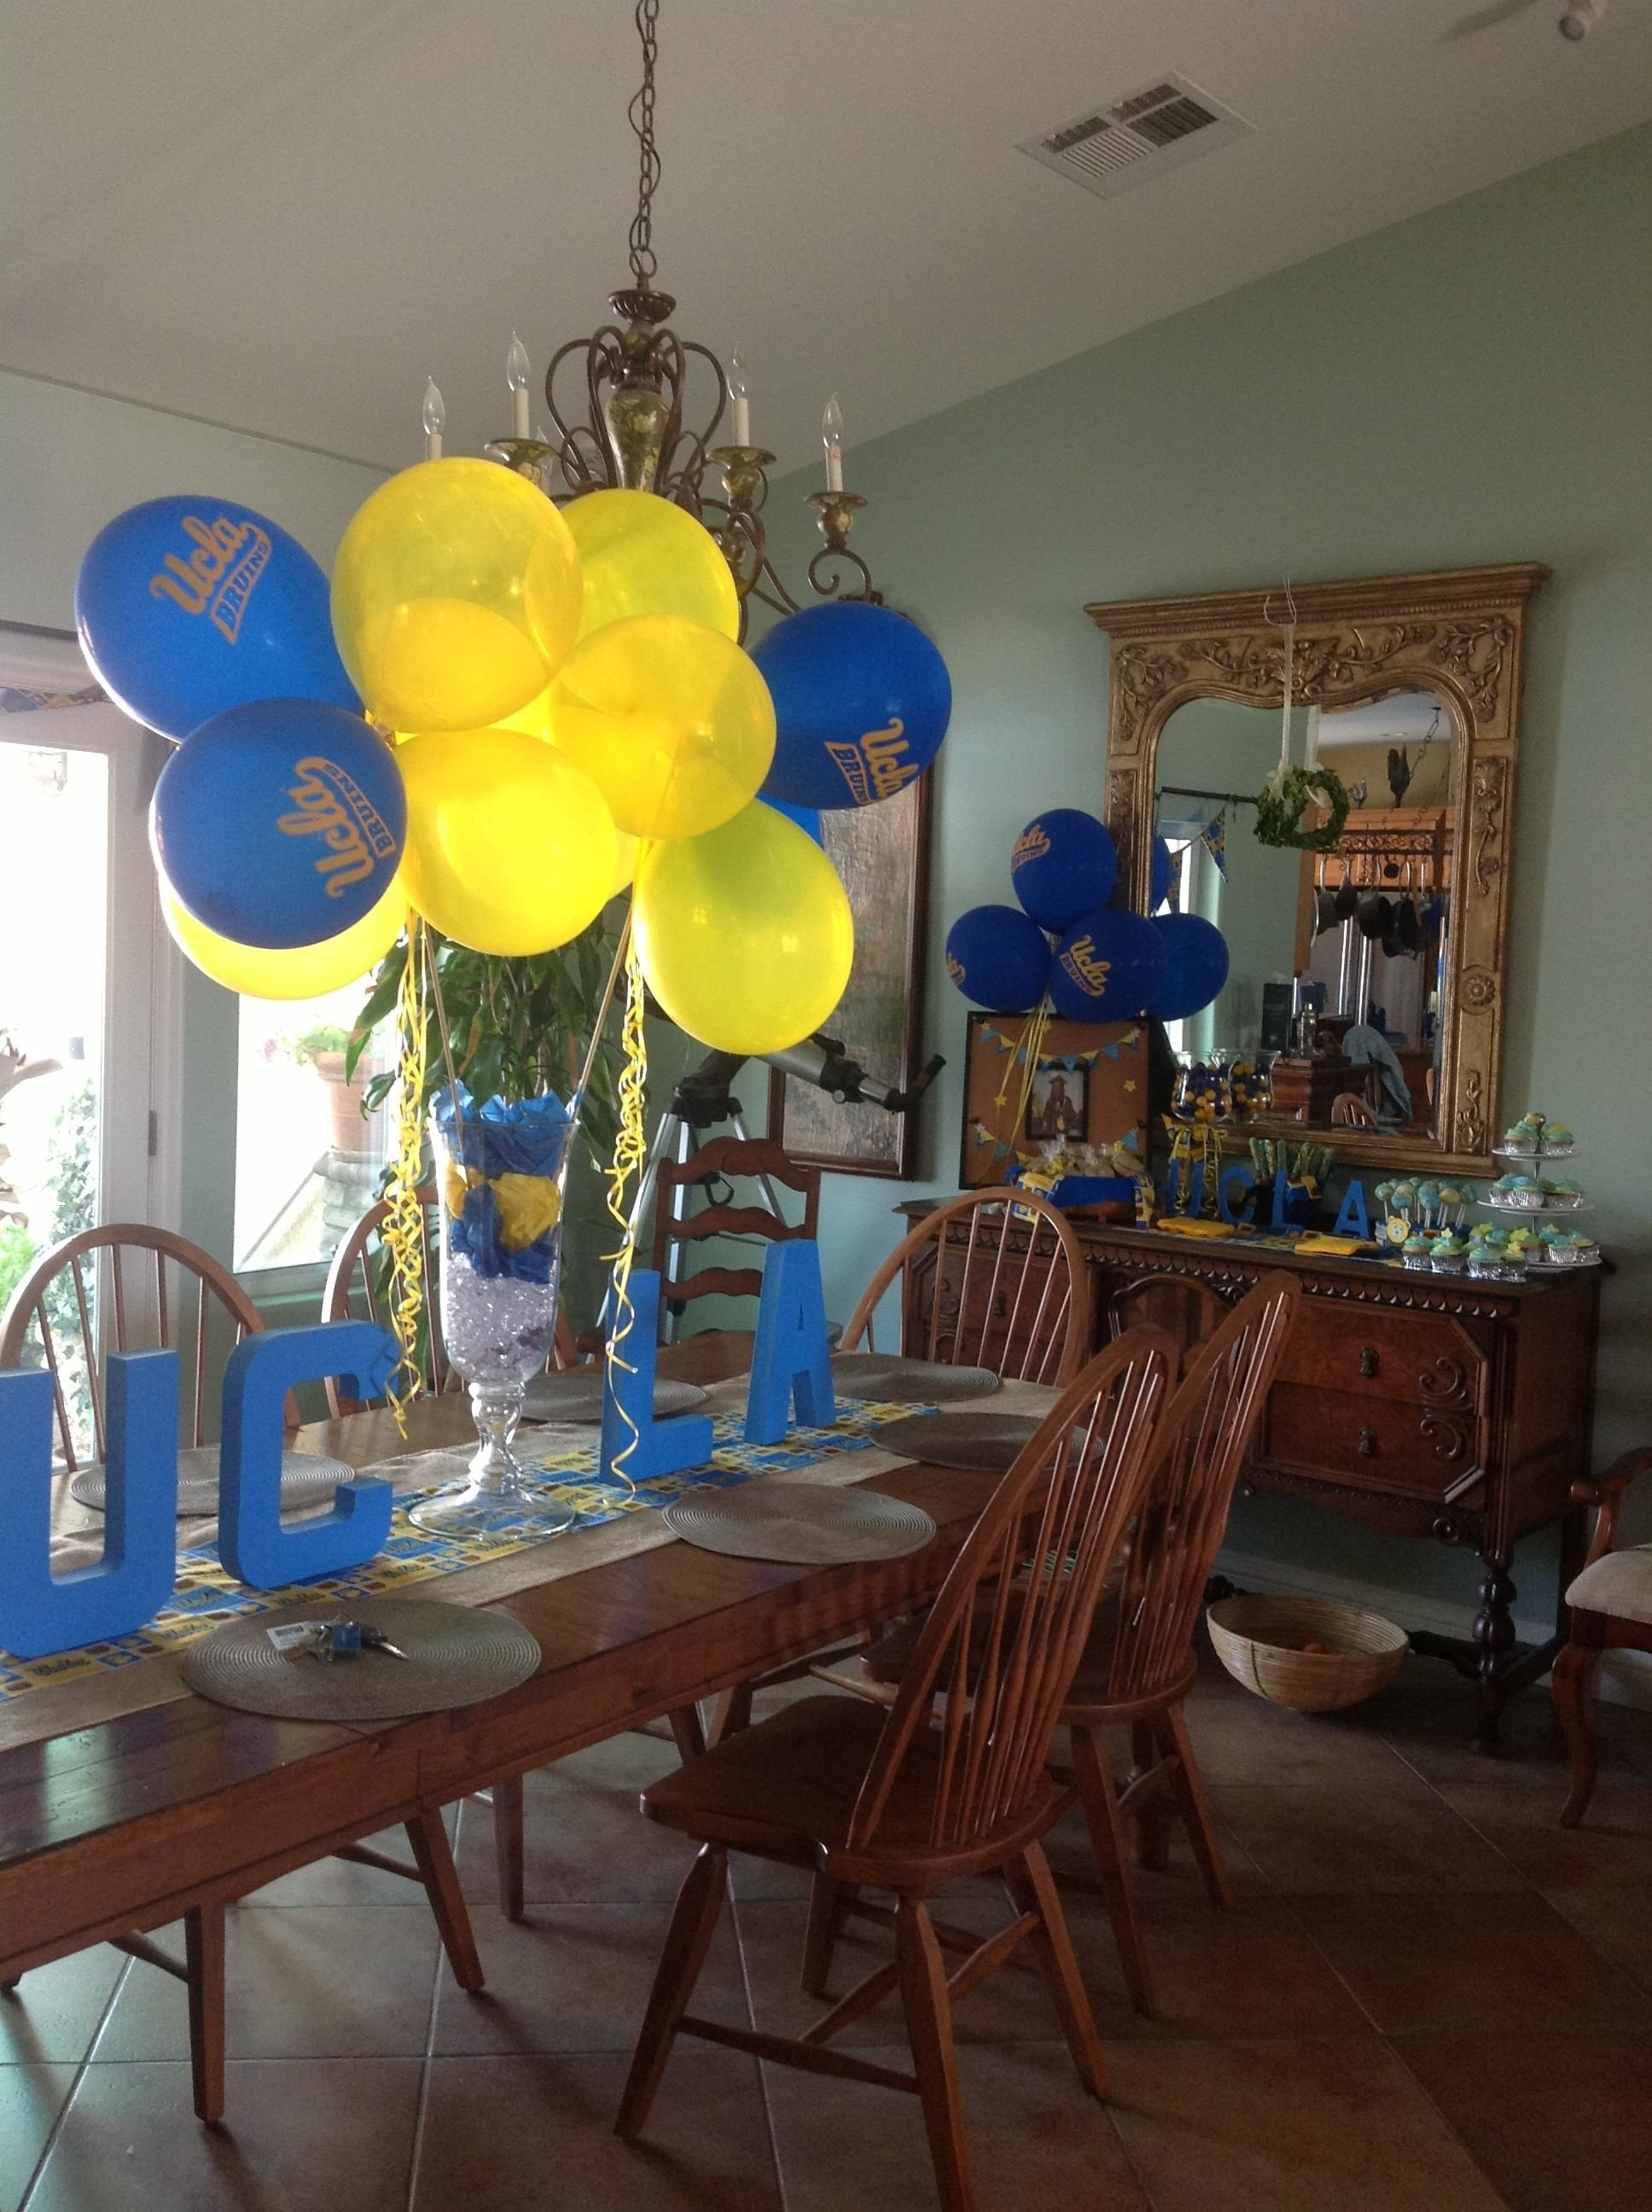 10 Pretty College Send Off Party Ideas ucla send off party for our niece party ideas pinterest 2021